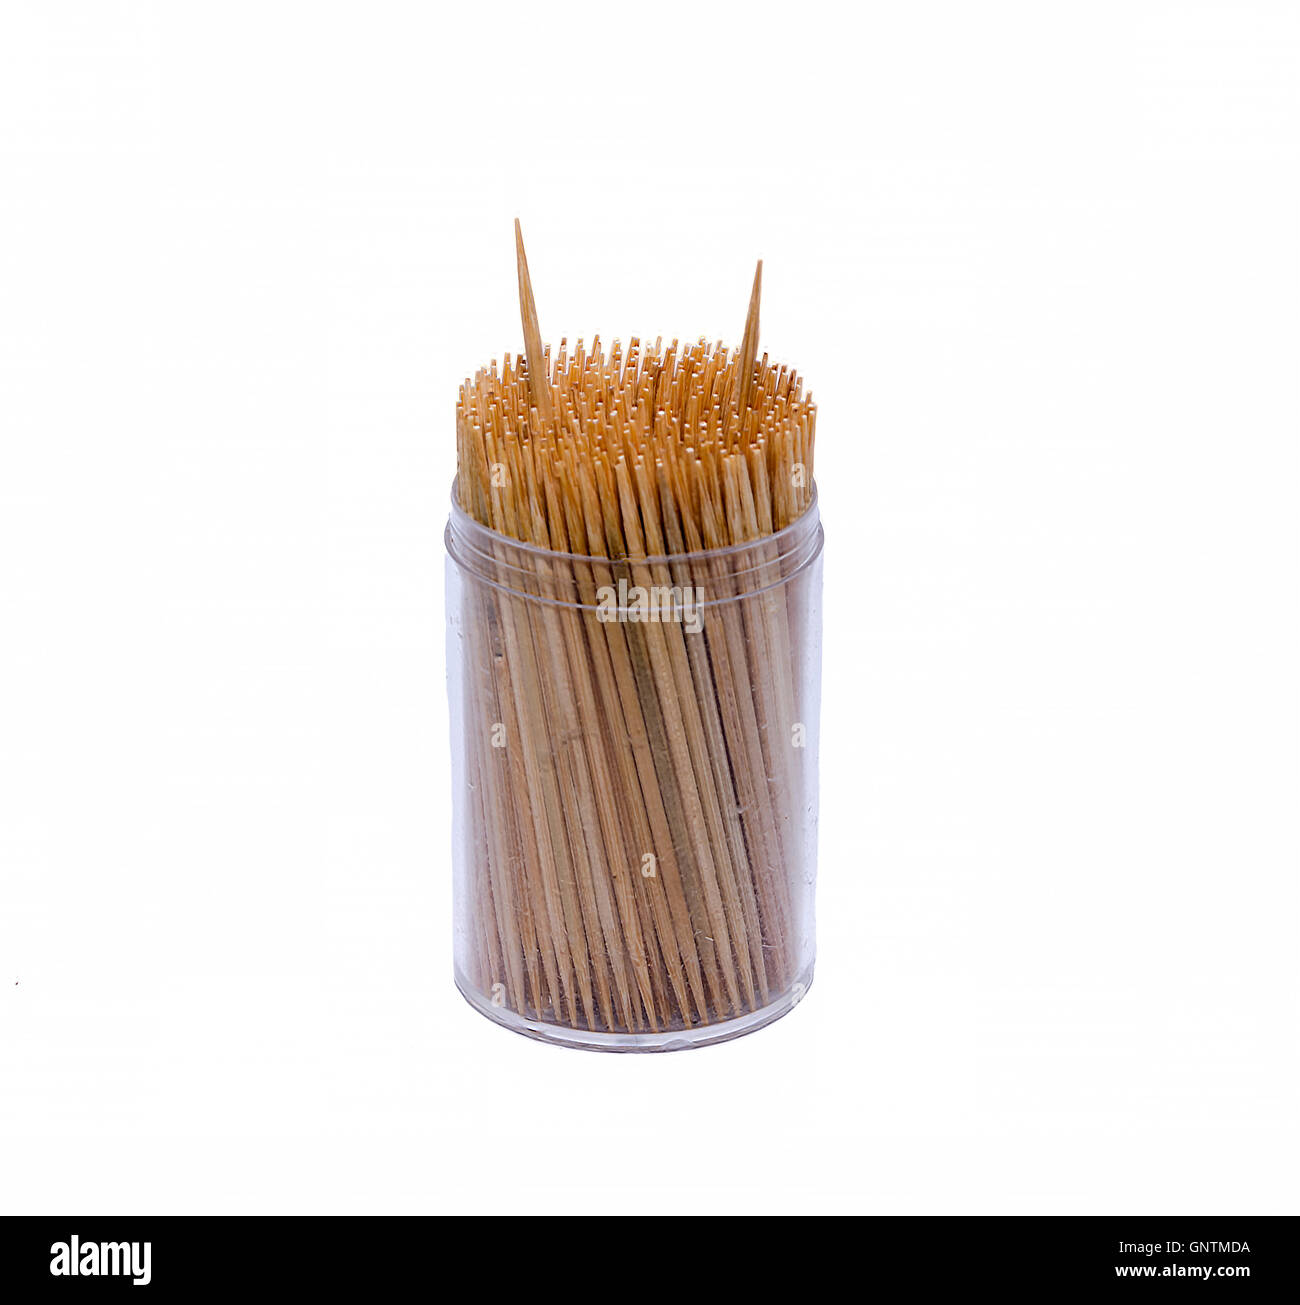 Toothpicks in a box. Isolated on white background with clipping path and copy space - Stock Image